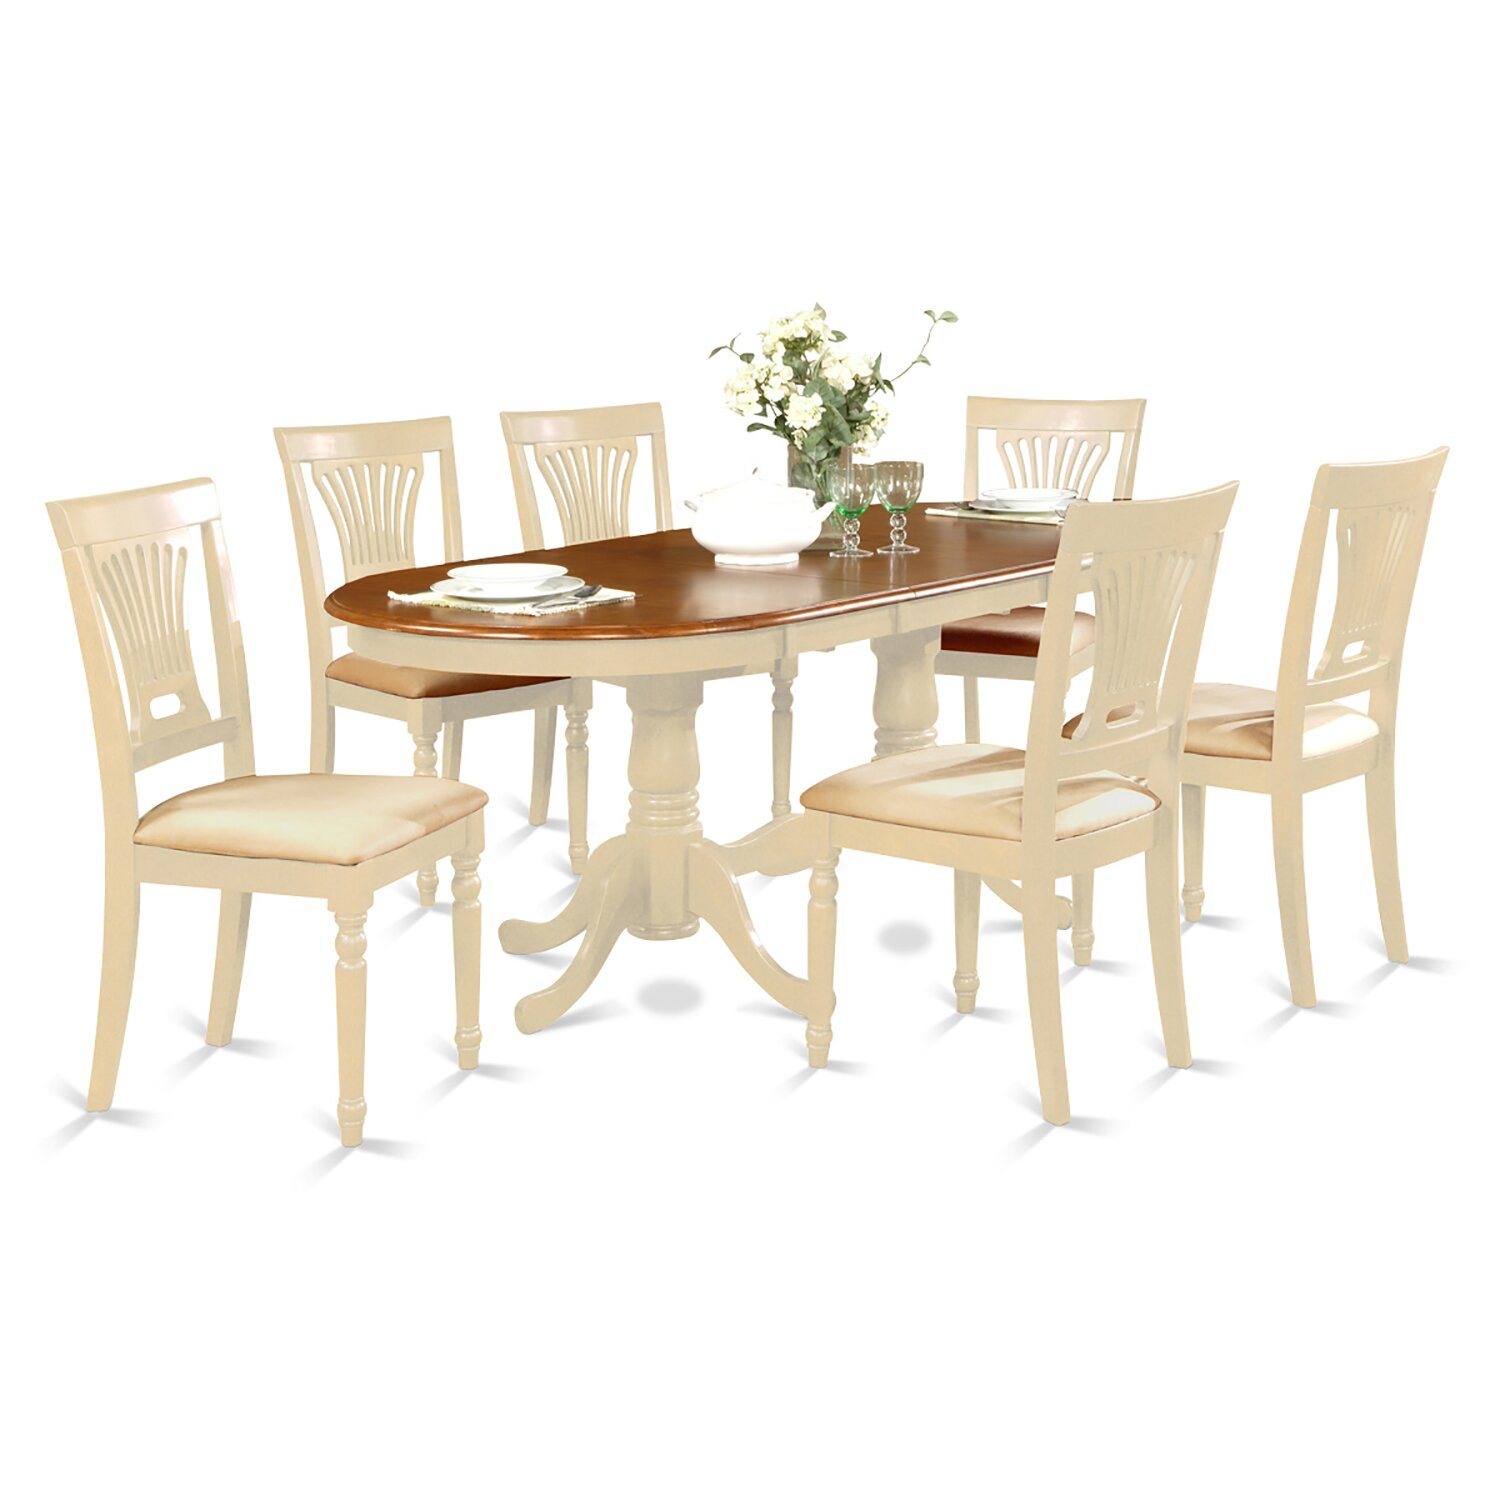 Darby home co germantown 7 piece dining set reviews for Furniture 7 credit reviews